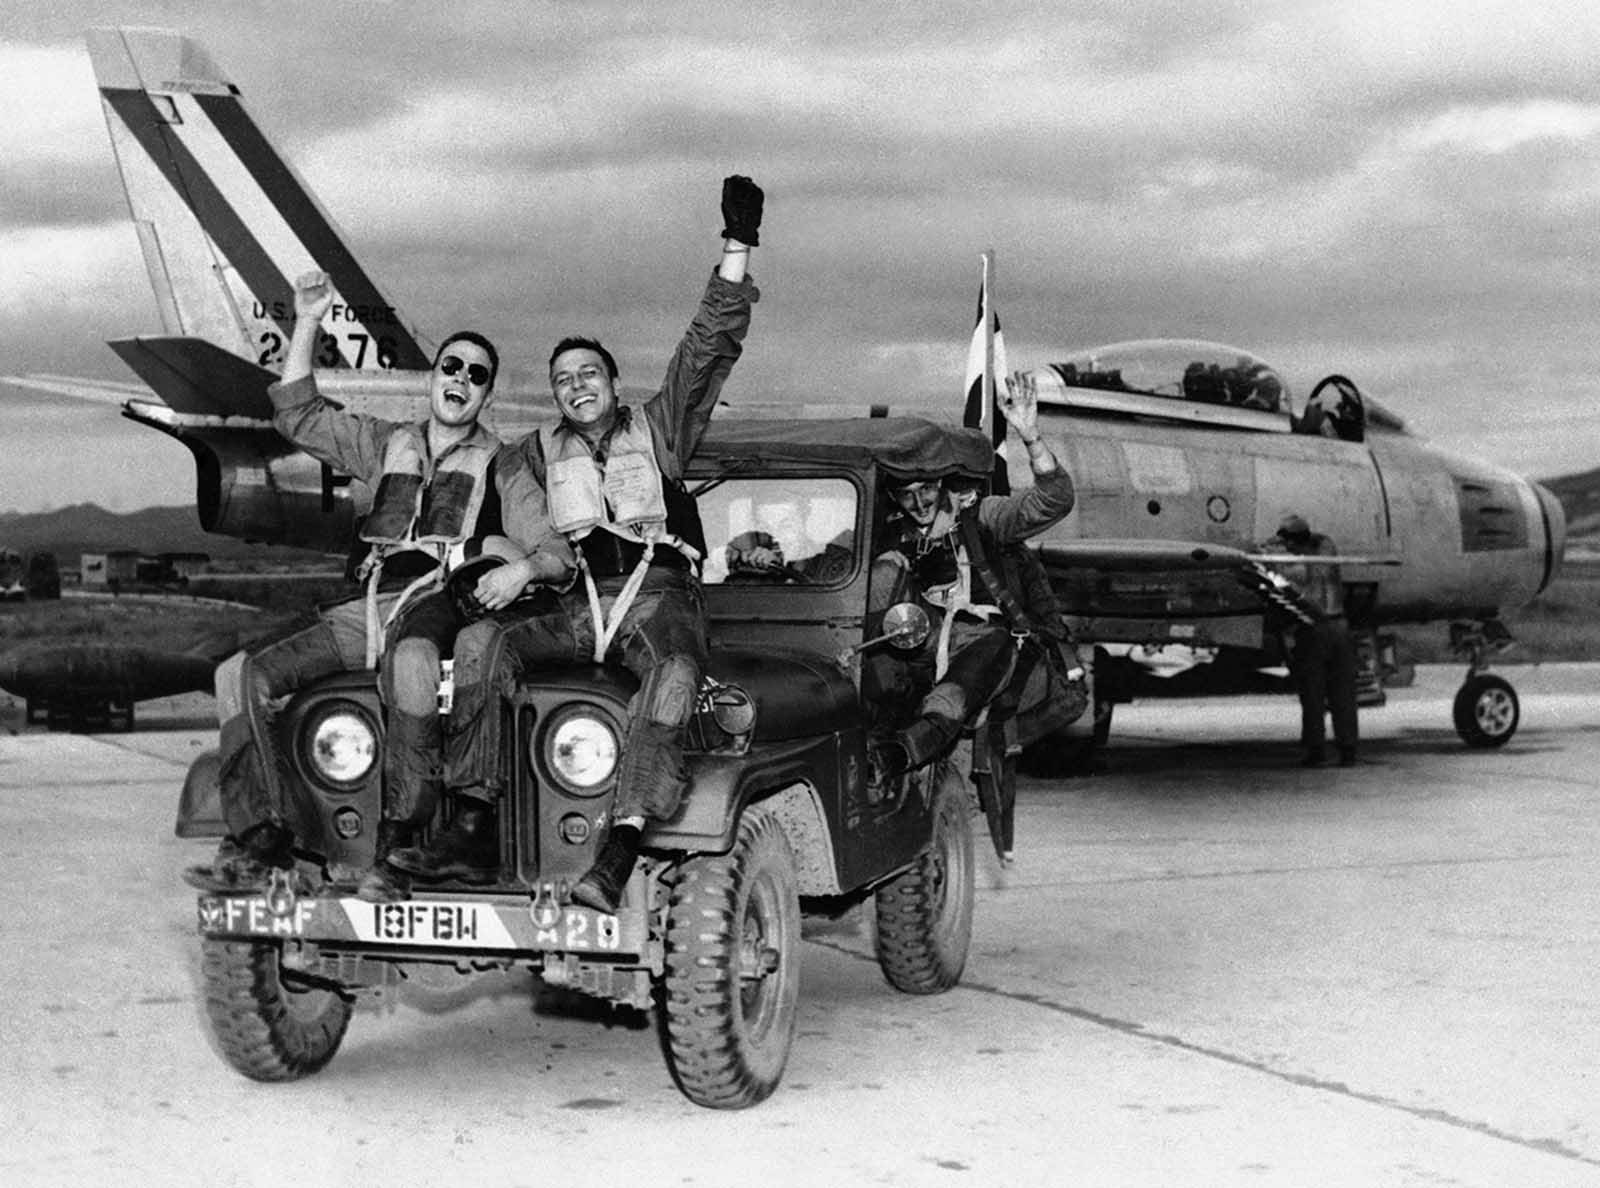 Three happy fliers of the 18th Fighter Bomber wing let the world know how they feels as they returned from a combat mission over North Korea to learn of the armistice signing on July 29, 1953. Left to right are: 2nd Lt. John Putty, Dallas, Tex.; 1st Lt. James A. Boucek, Ottawa, Kansas,: and 1st Lt. Richard D. Westcott, Houston, Tex., waving from the back seat of the jeep.